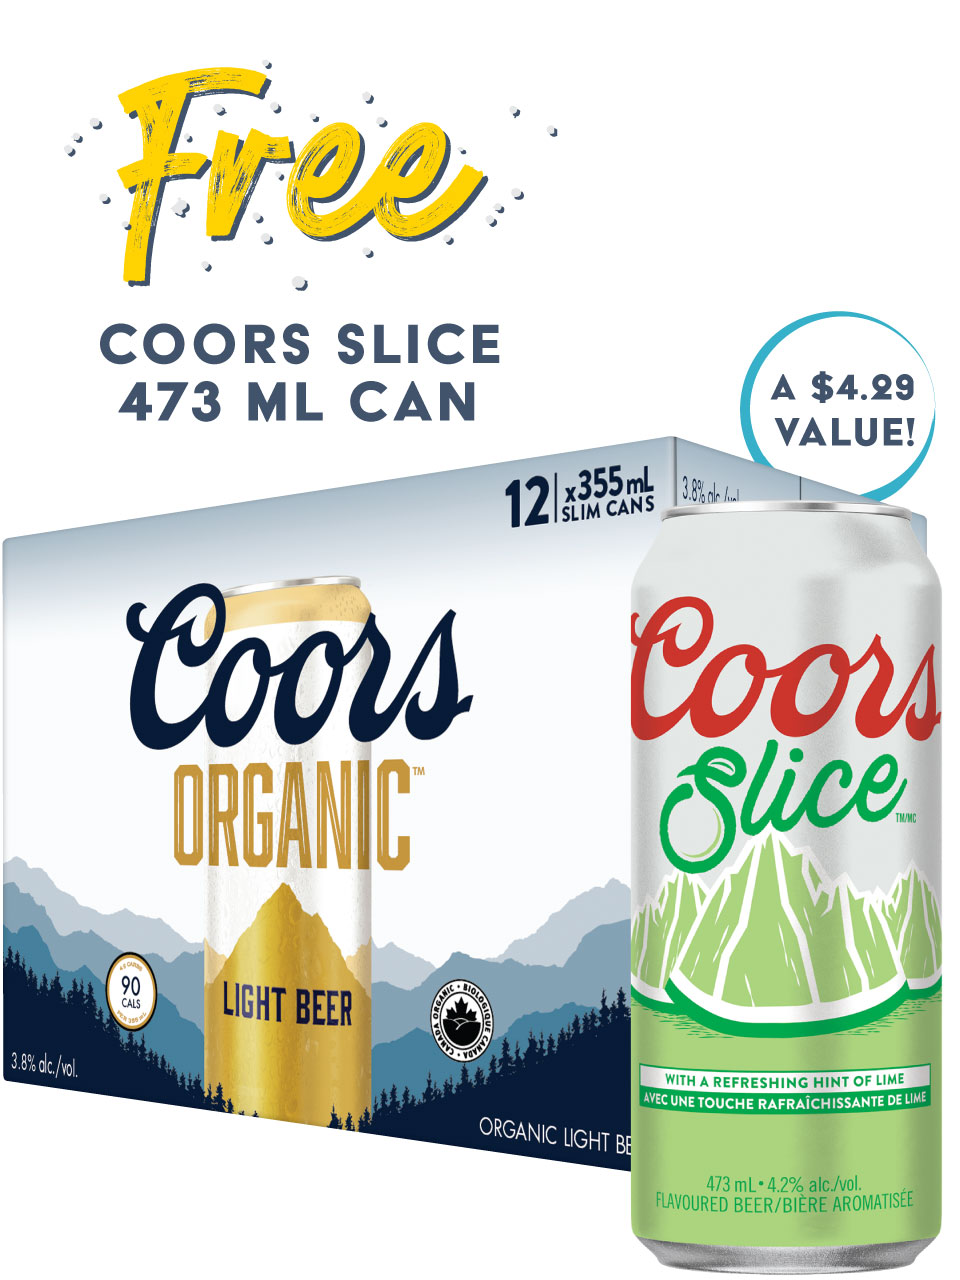 Coors Organic 12 Pack Cans